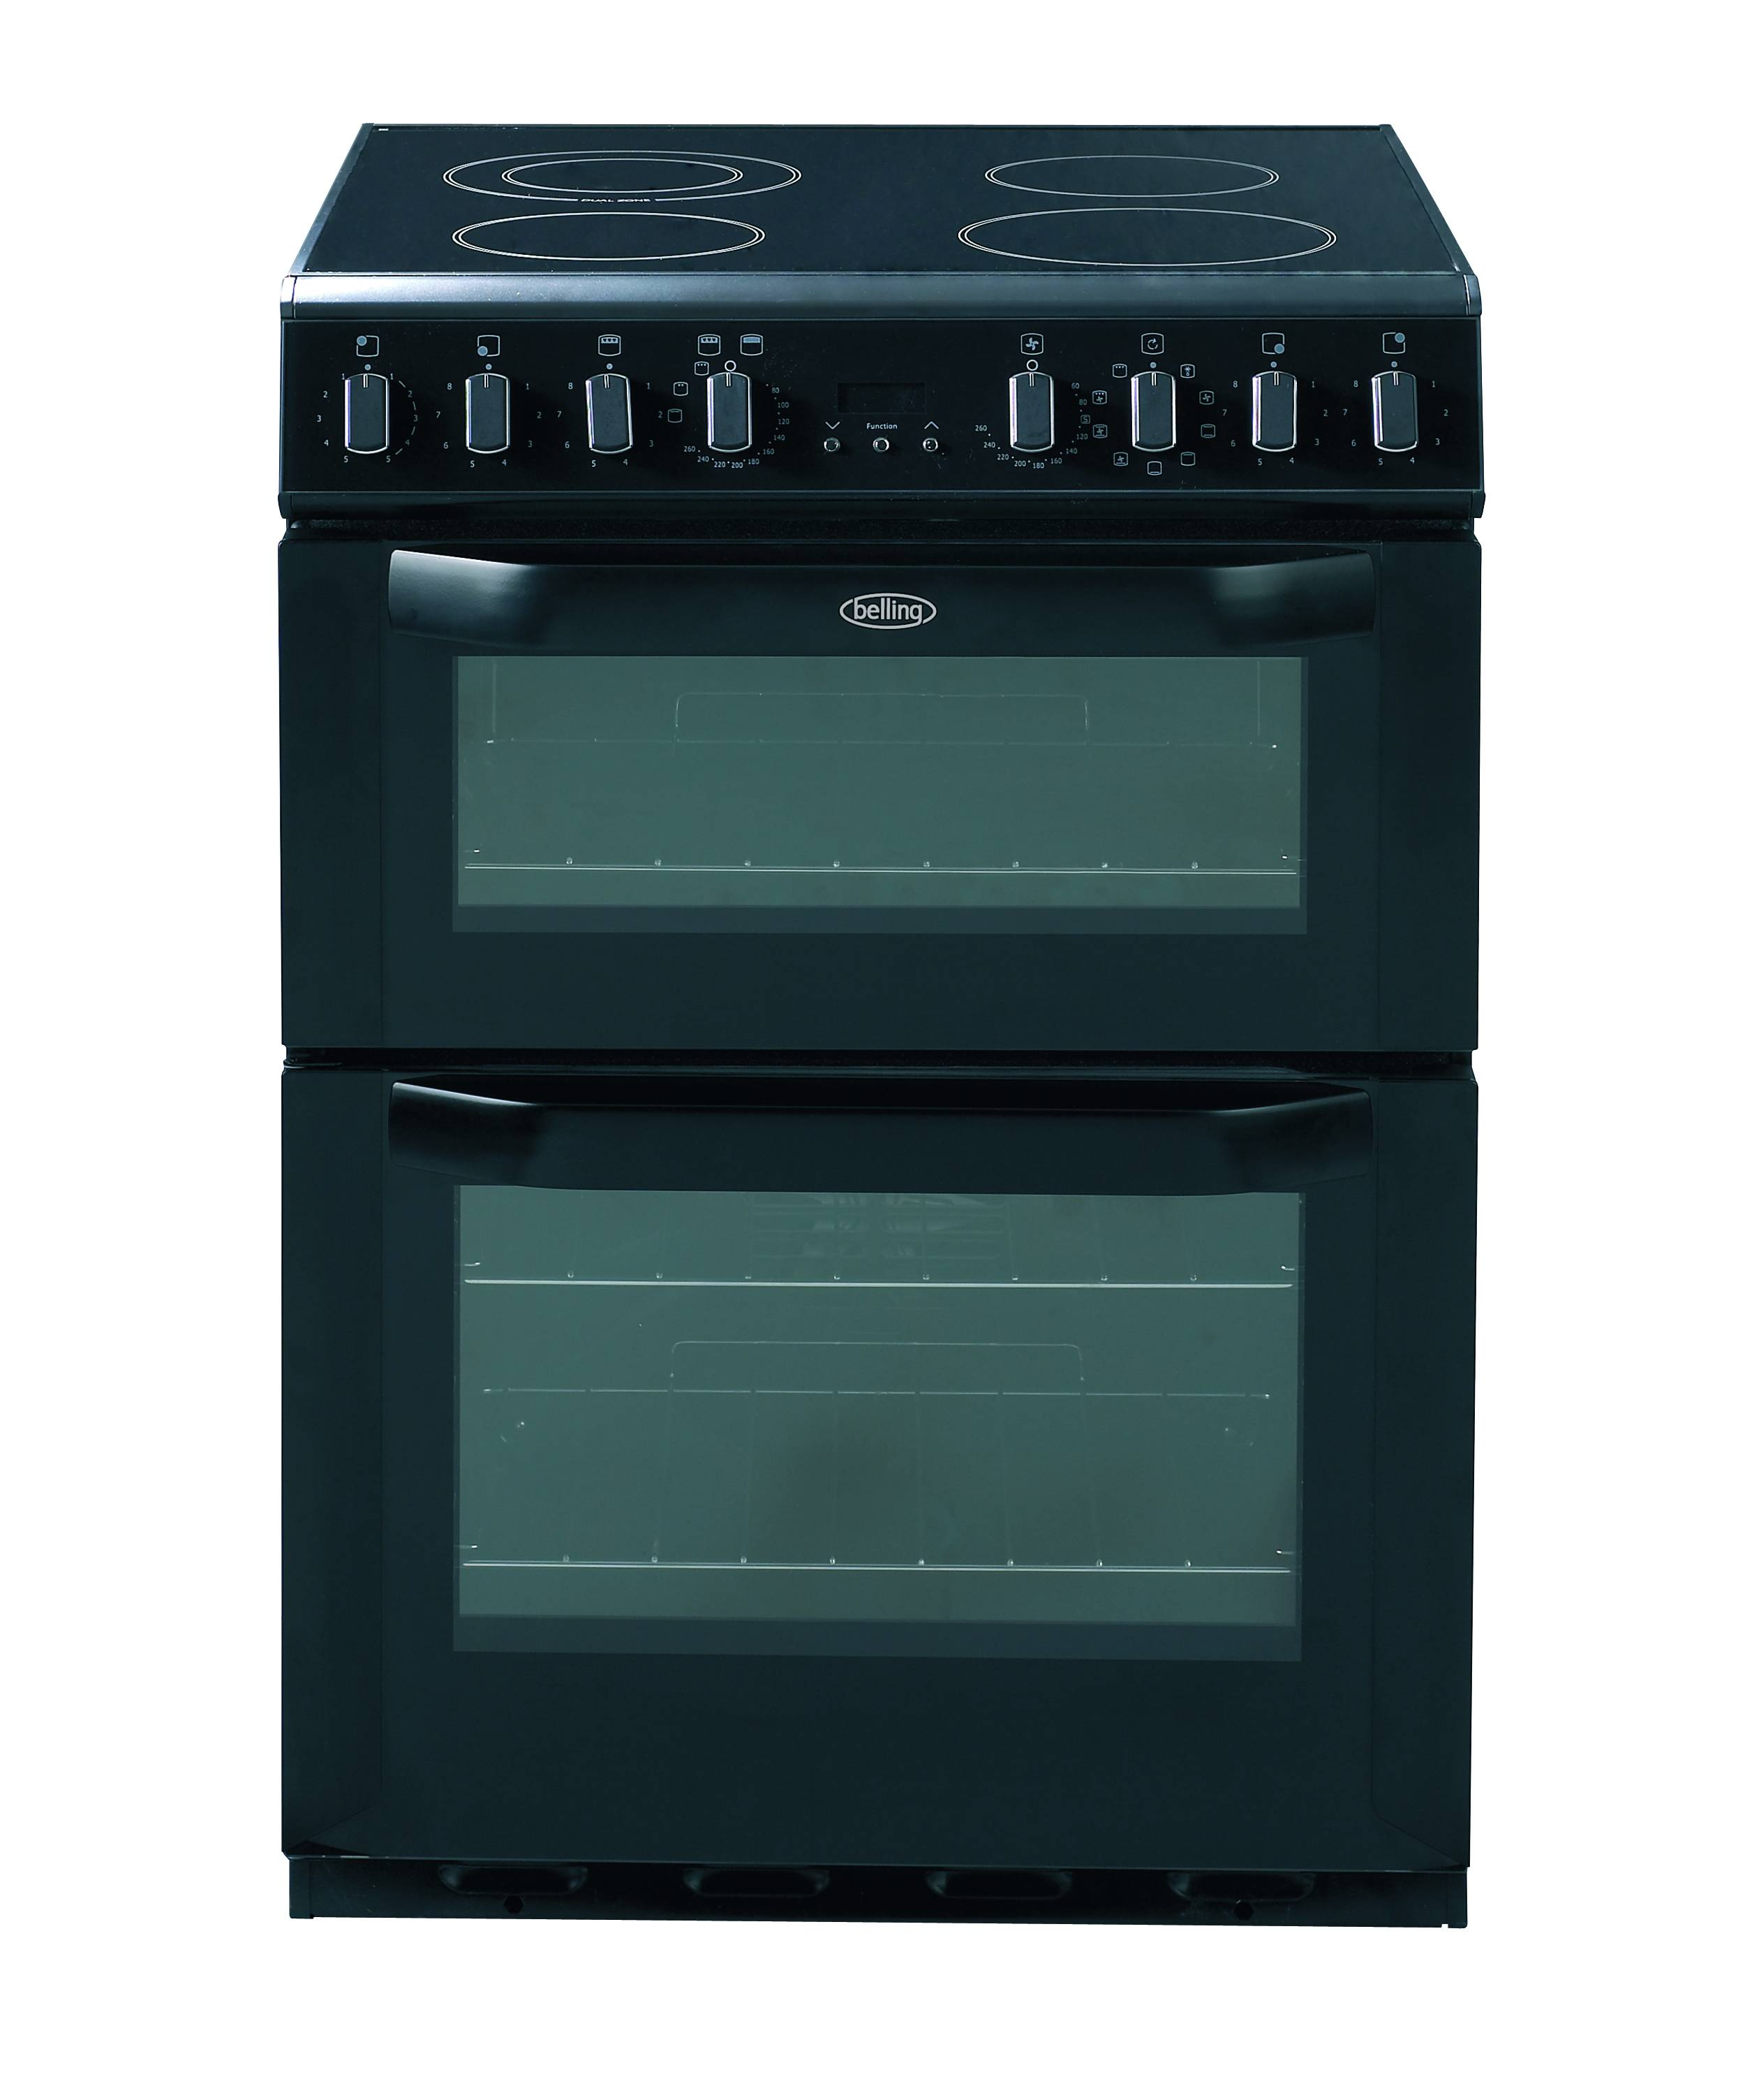 Uncategorized Kitchen Appliances Buy Now Pay Later buy now pay later 0 apr page 438 dalzells of markethill belling fse60mf electric multifunction double oven black